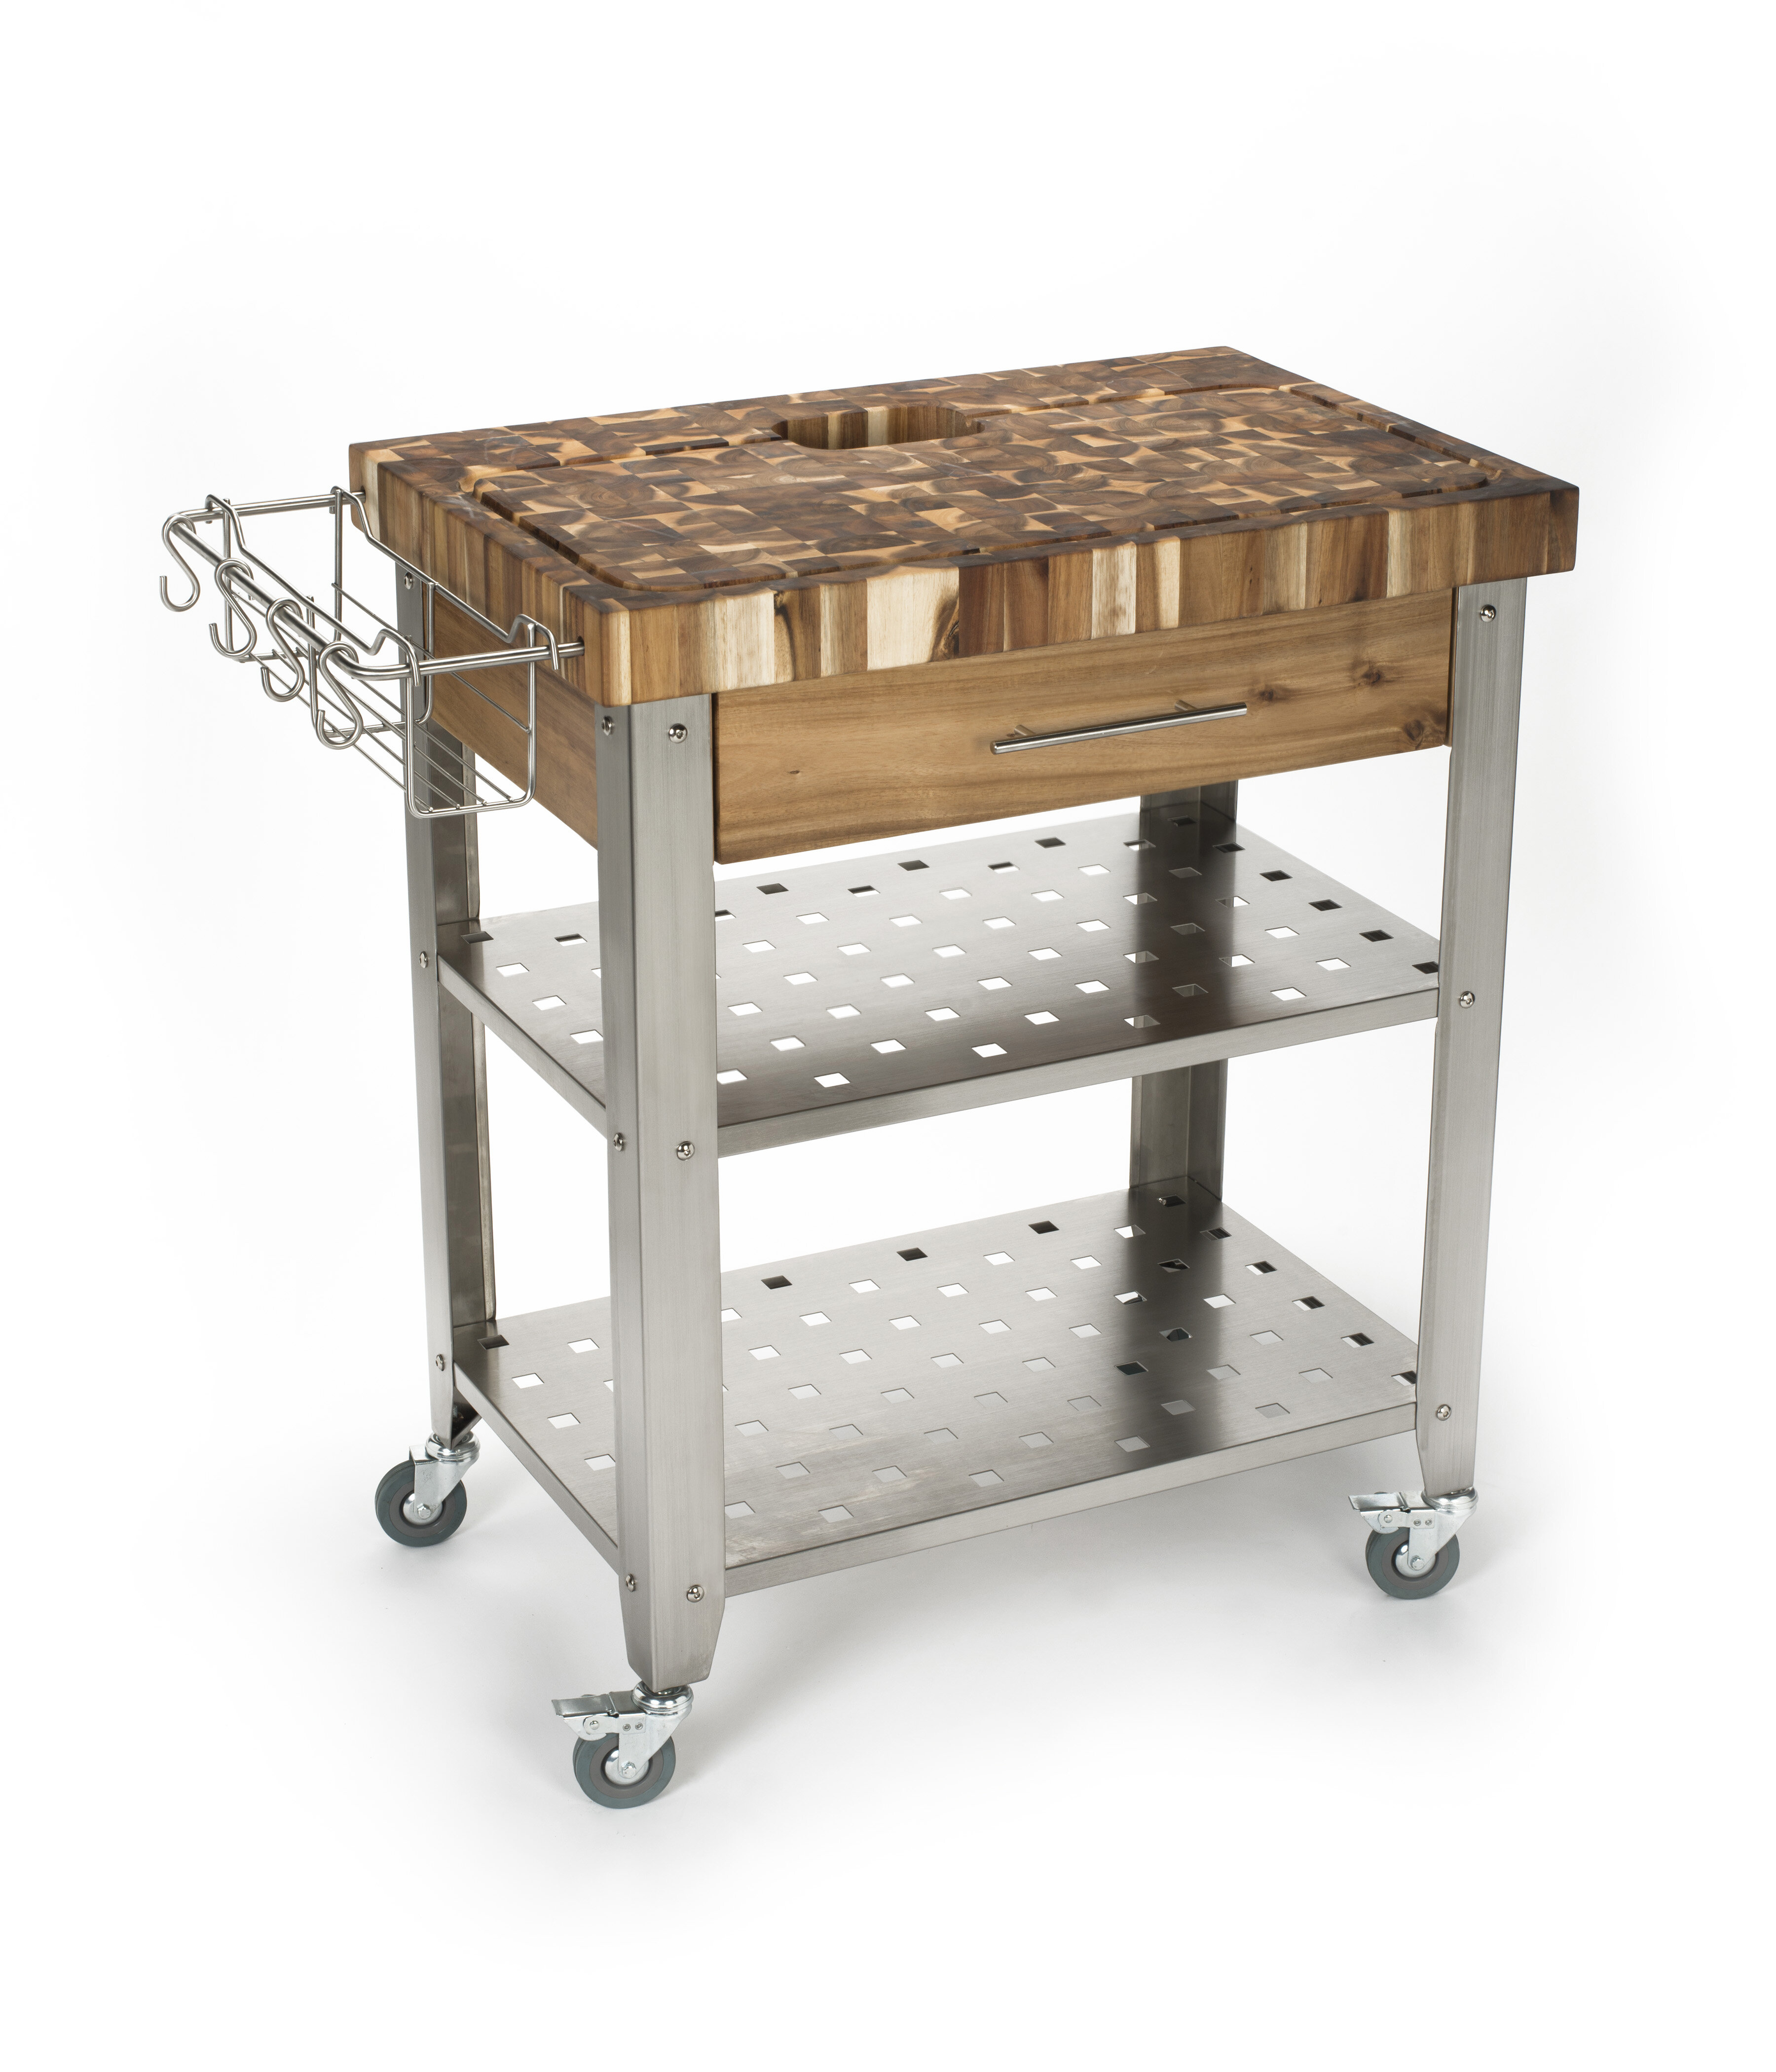 Chris & Chris Kitchen Island with Butcher Block Top & Reviews | Wayfair